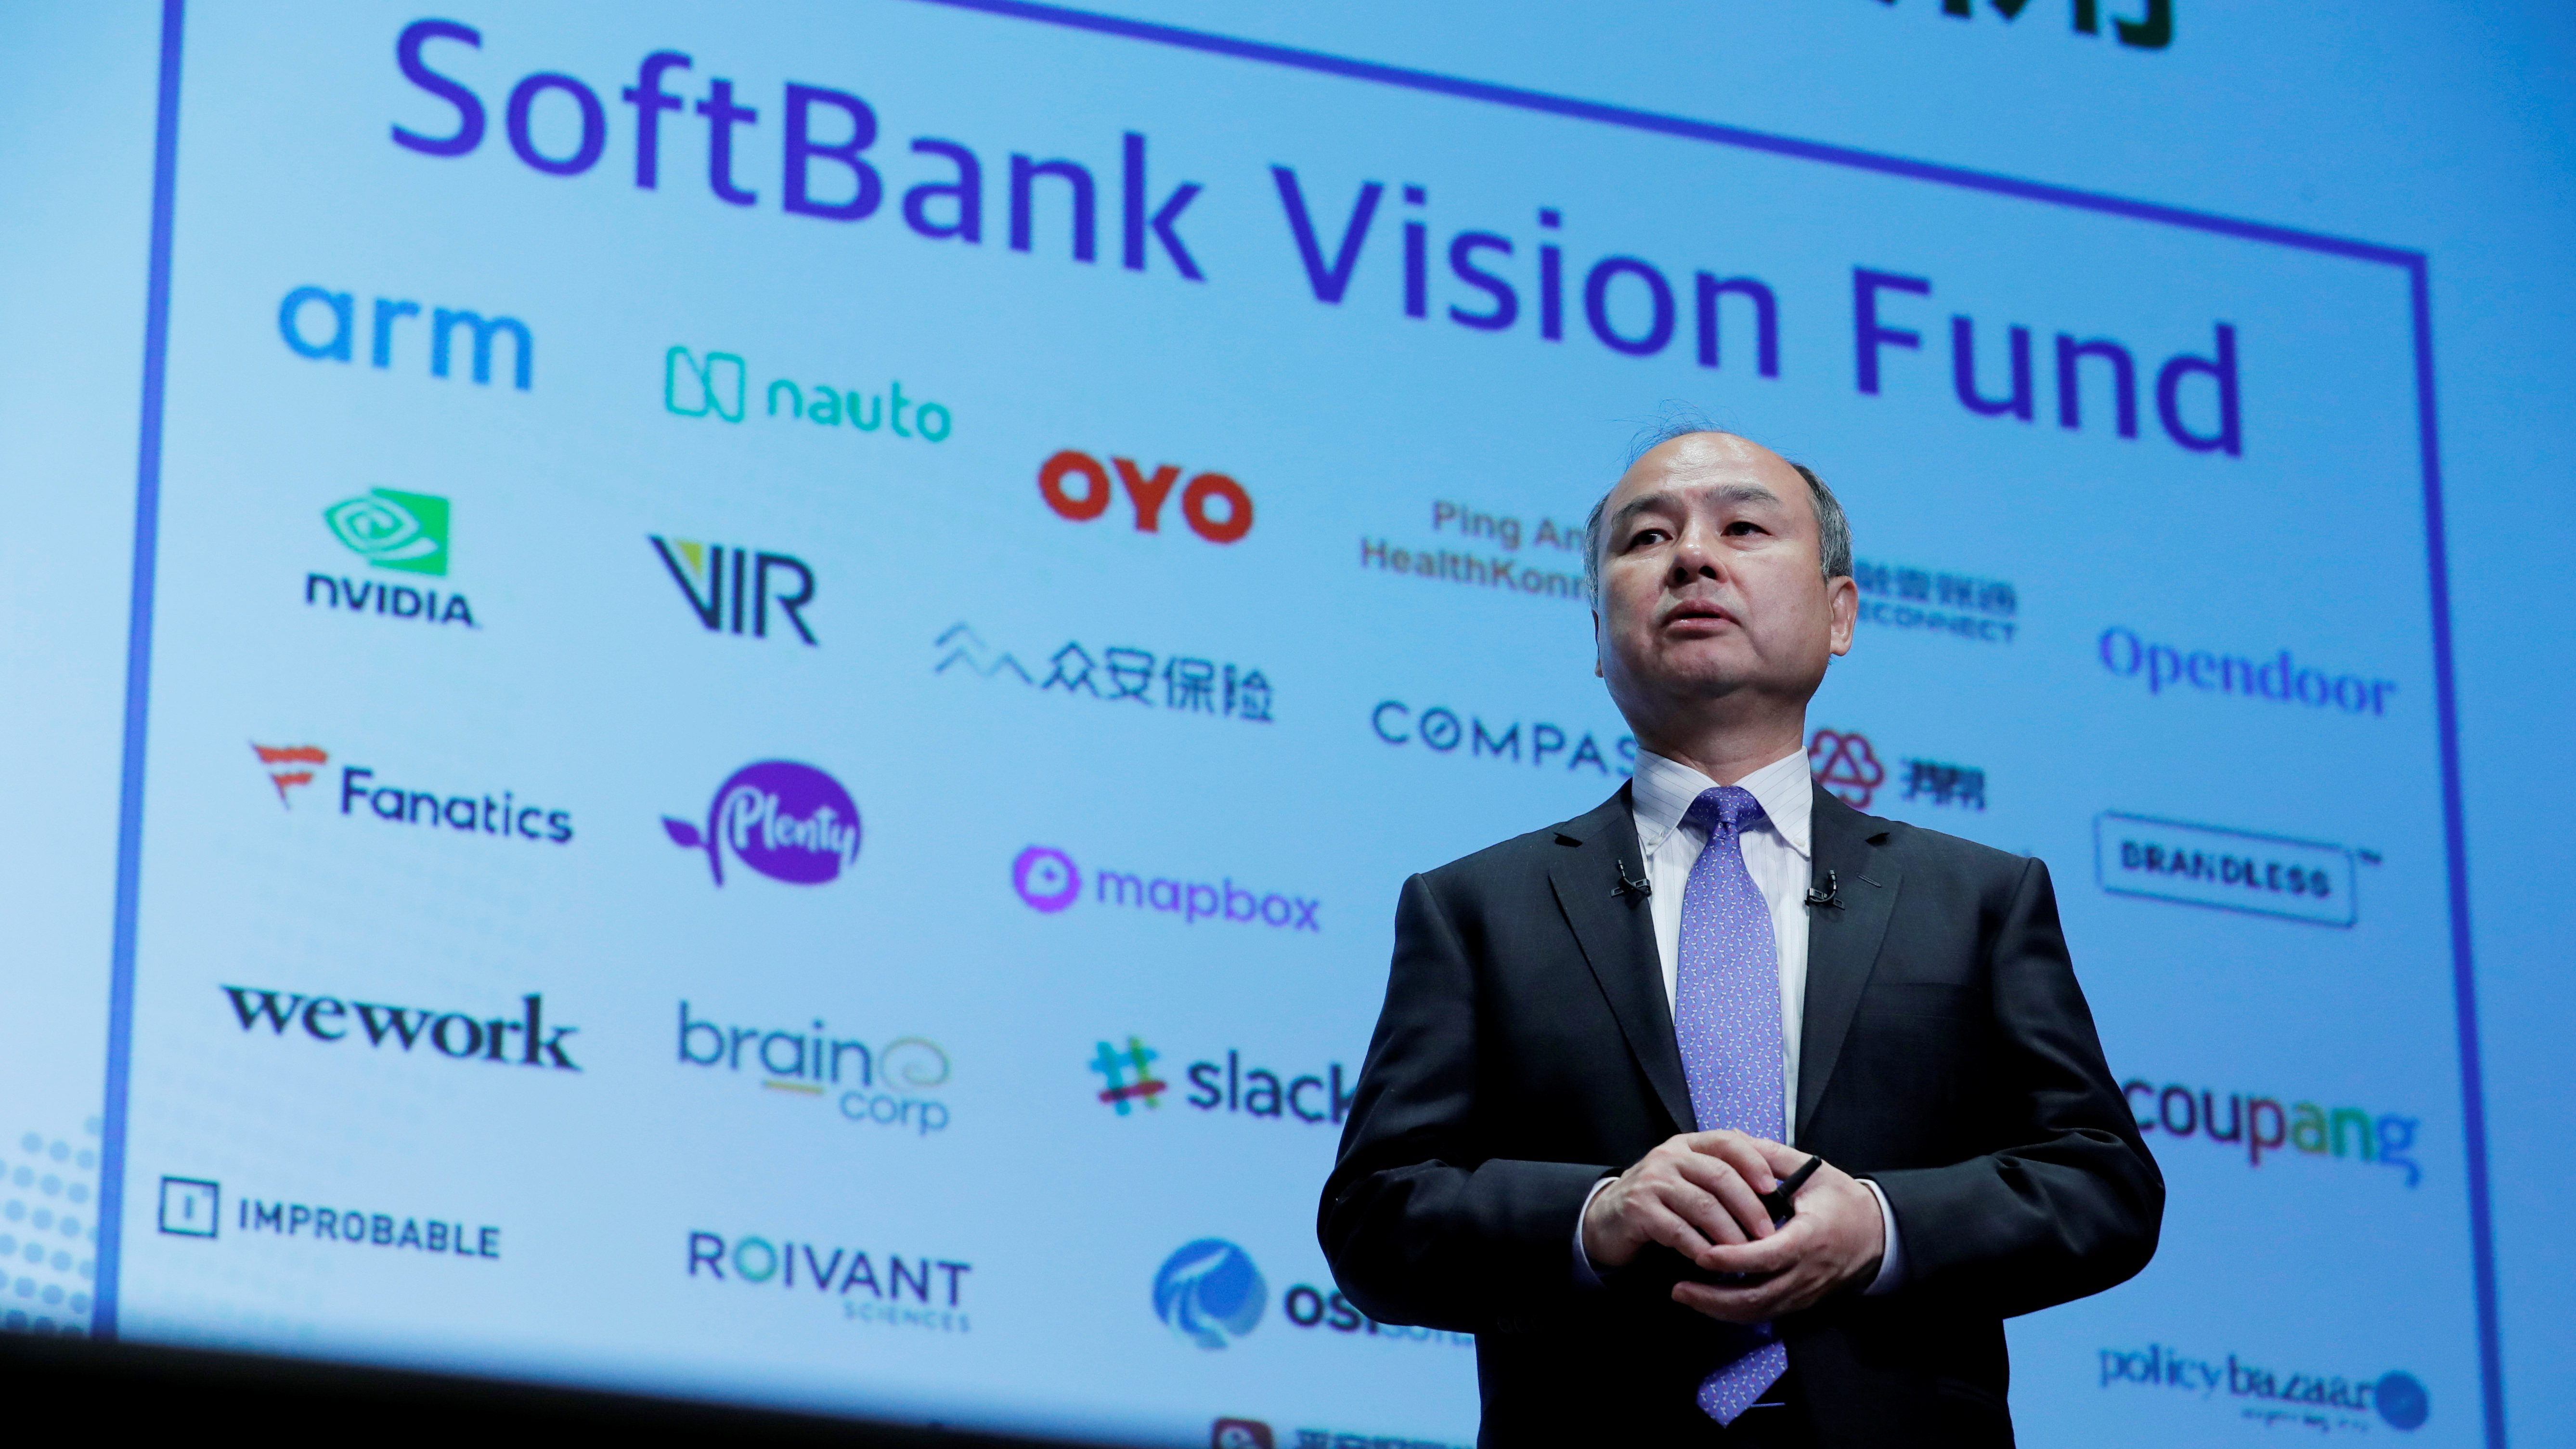 Japan's SoftBank Group Corp CEO Masayoshi Son